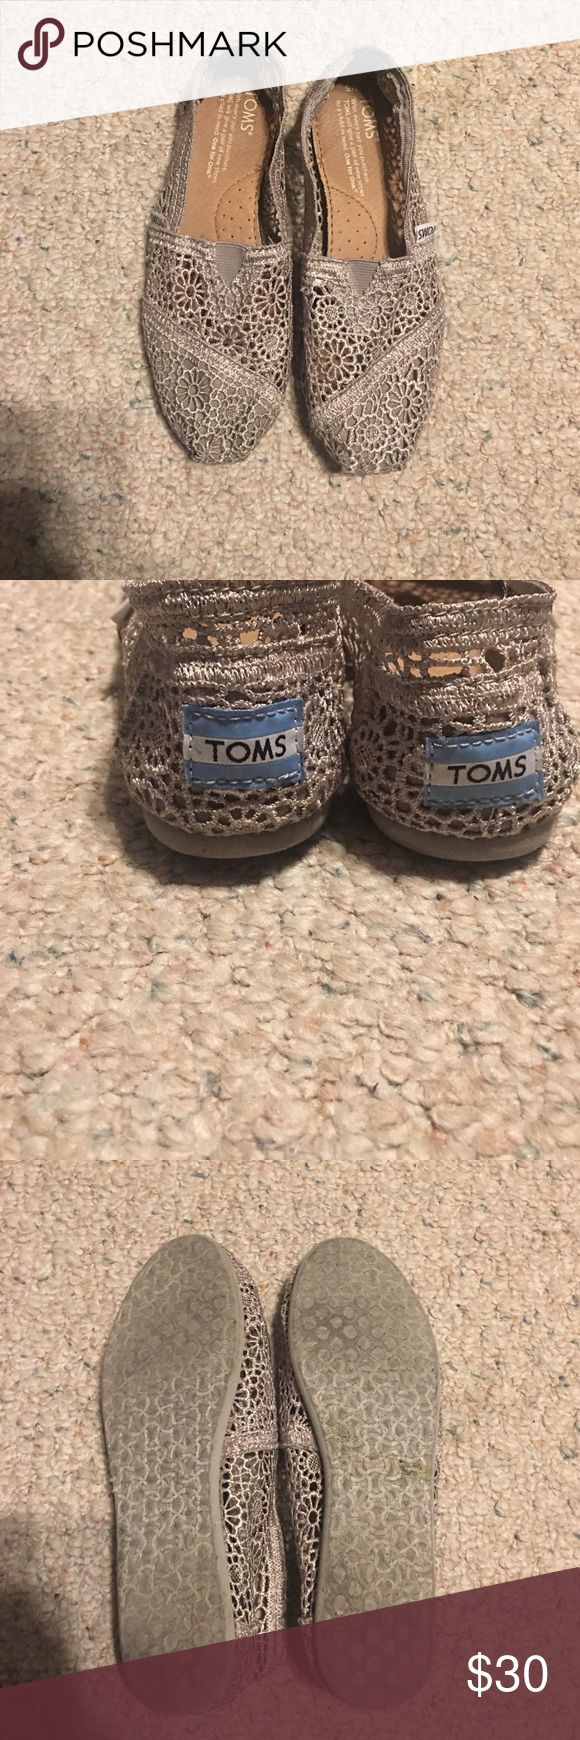 Gray toms Classics silver morocco crochet toms. Size 5. Has a box. TOMS Shoes Sandals